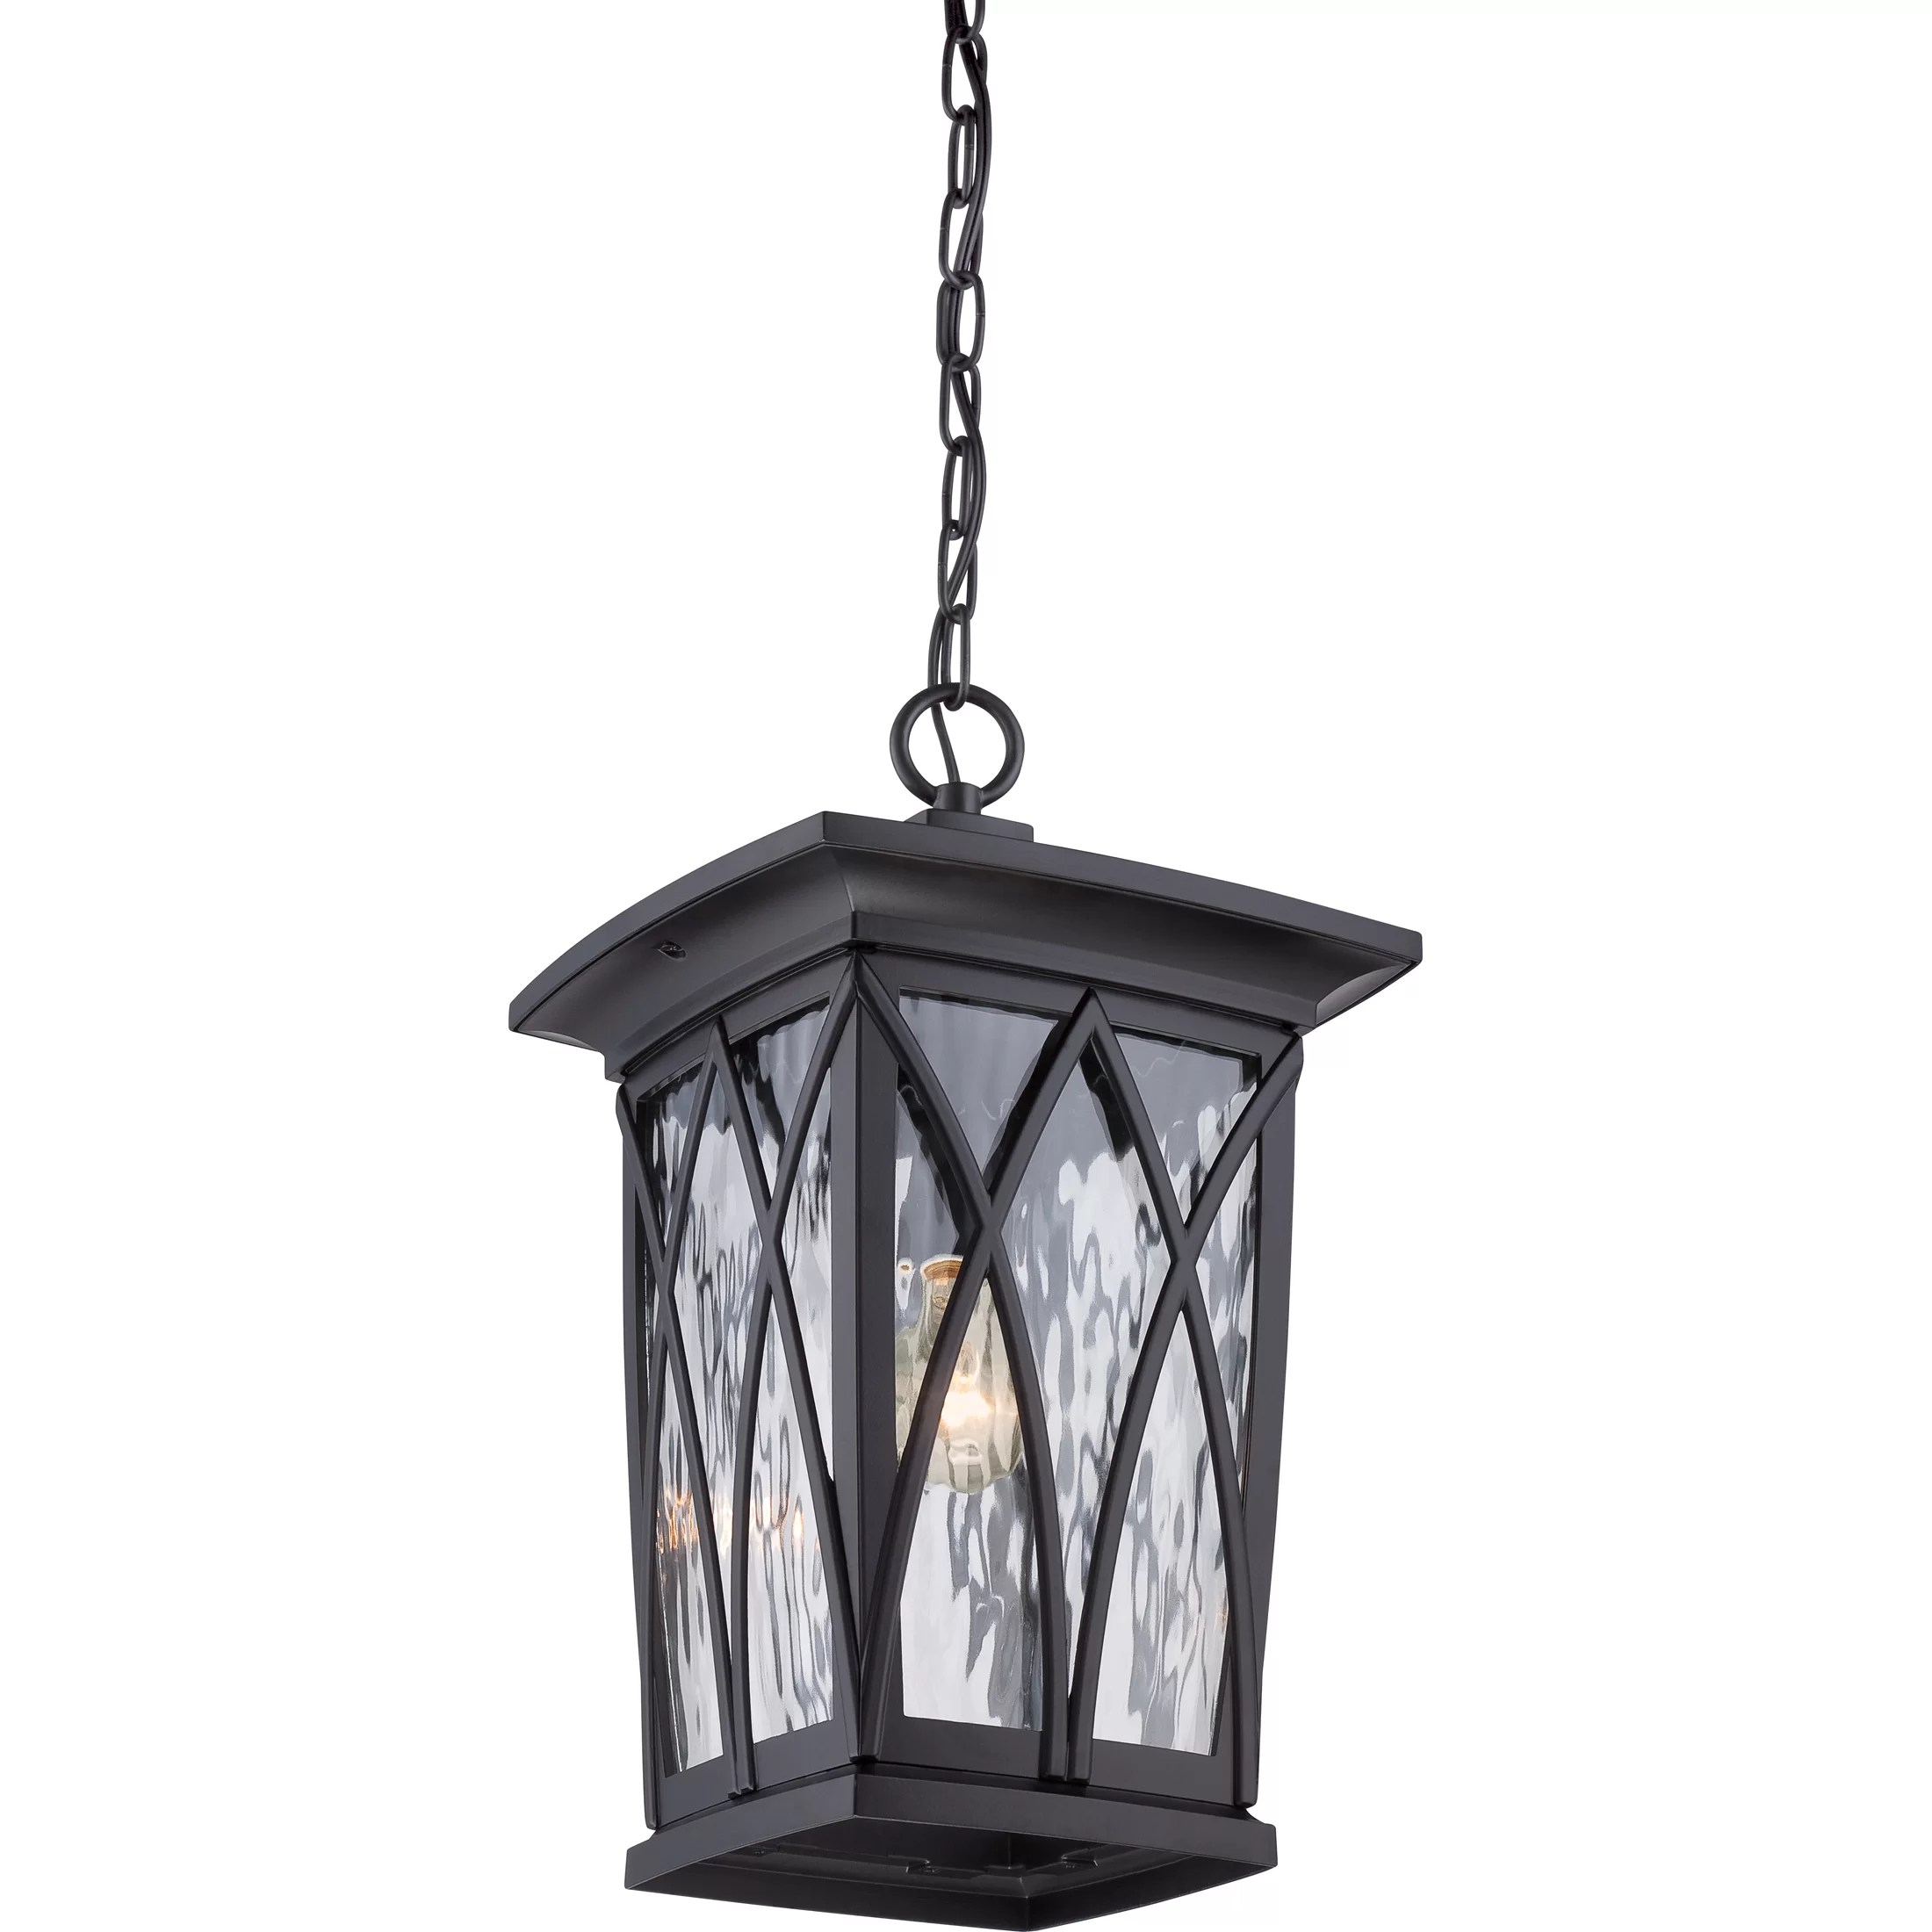 Outdoor Hanging Lanterns Quoizel Grover 1 Light Outdoor Hanging Lantern Wayfair